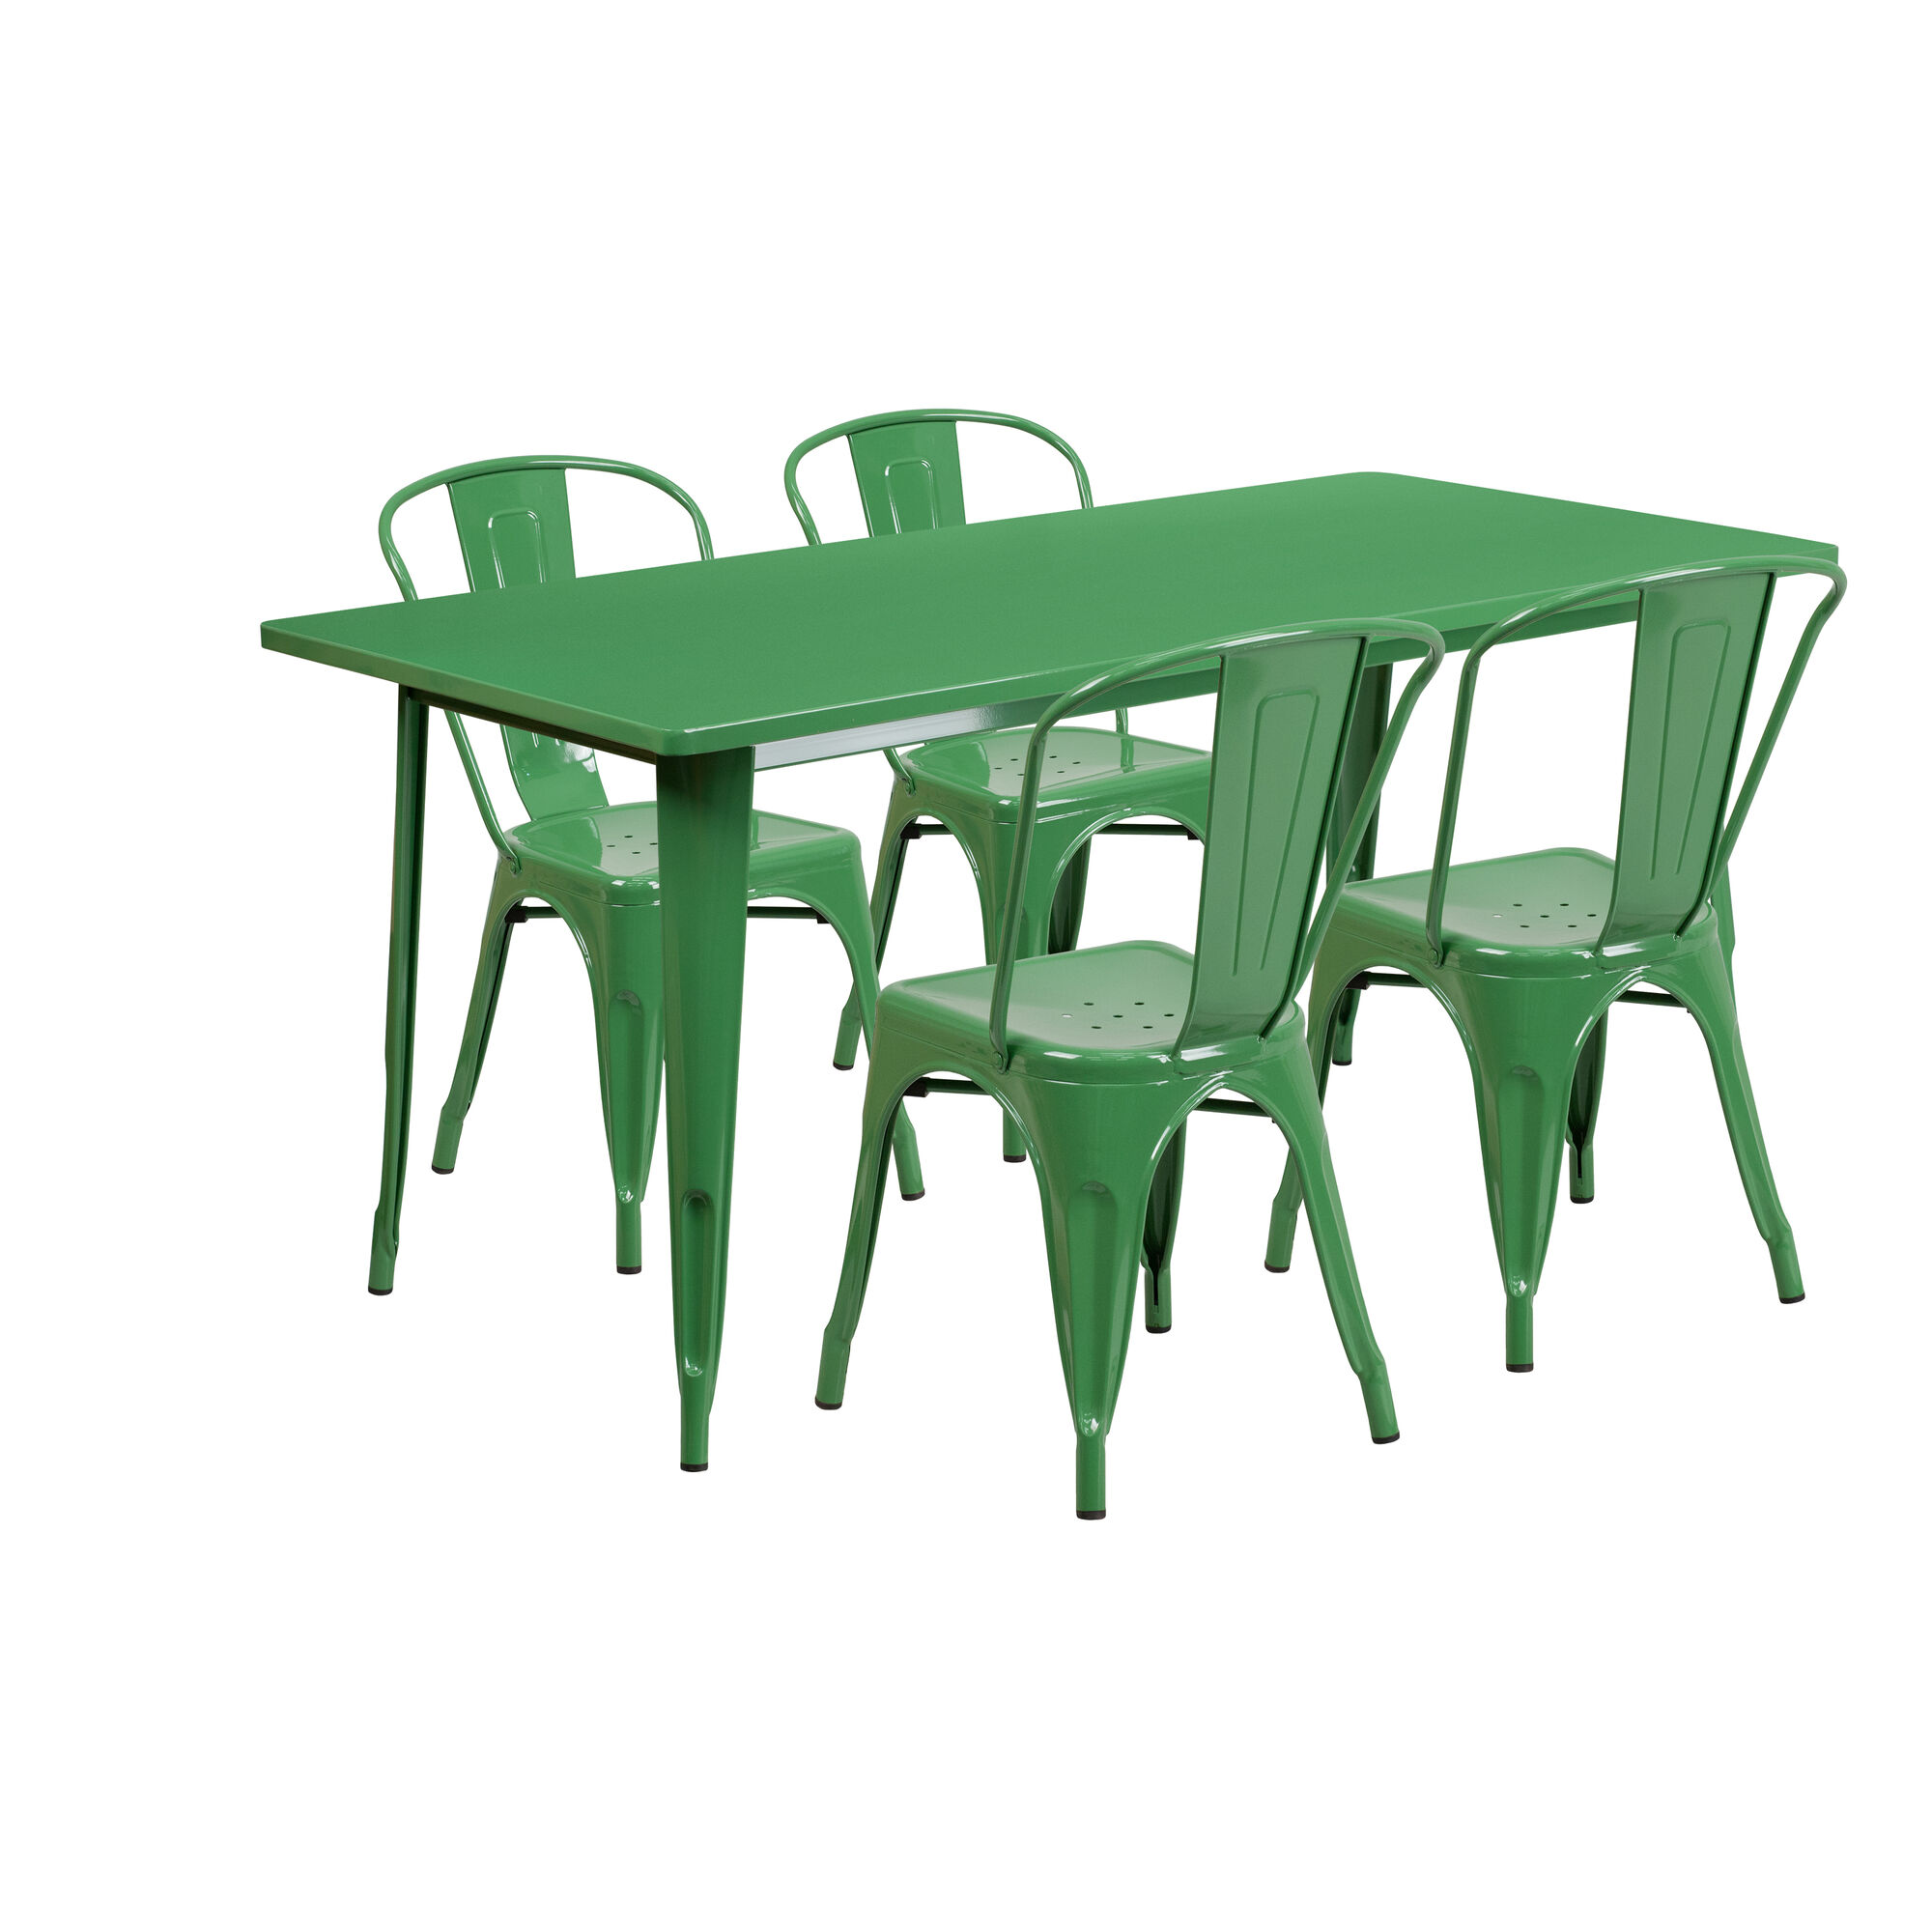 c77b9043a1f9 31.5x63 Green Metal Table Set ET-CT005-4-30-GN-GG ...